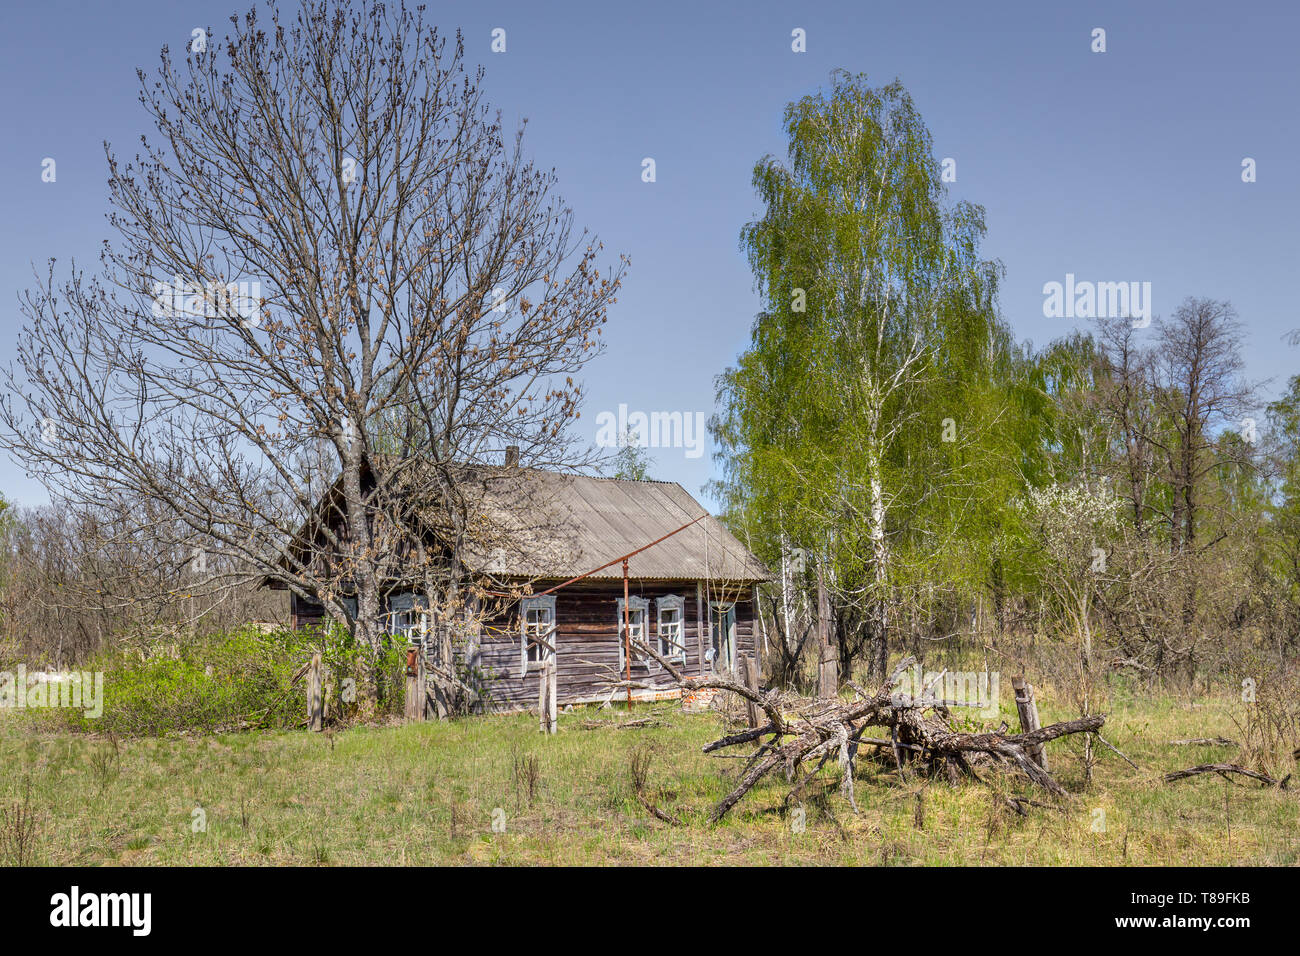 Abandoned little house in Belarus Chernobyl exclusion zone, recently opened for the public from april 2019. - Stock Image